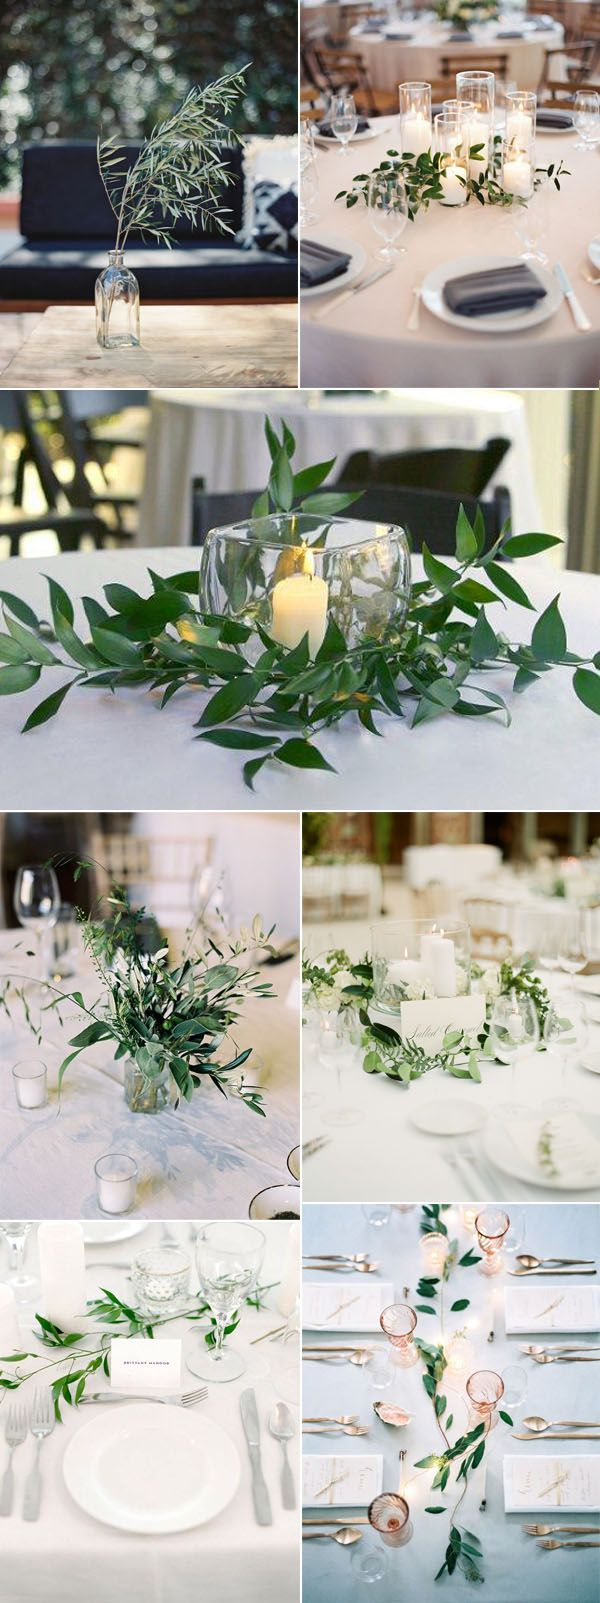 Best round table centerpieces ideas on pinterest